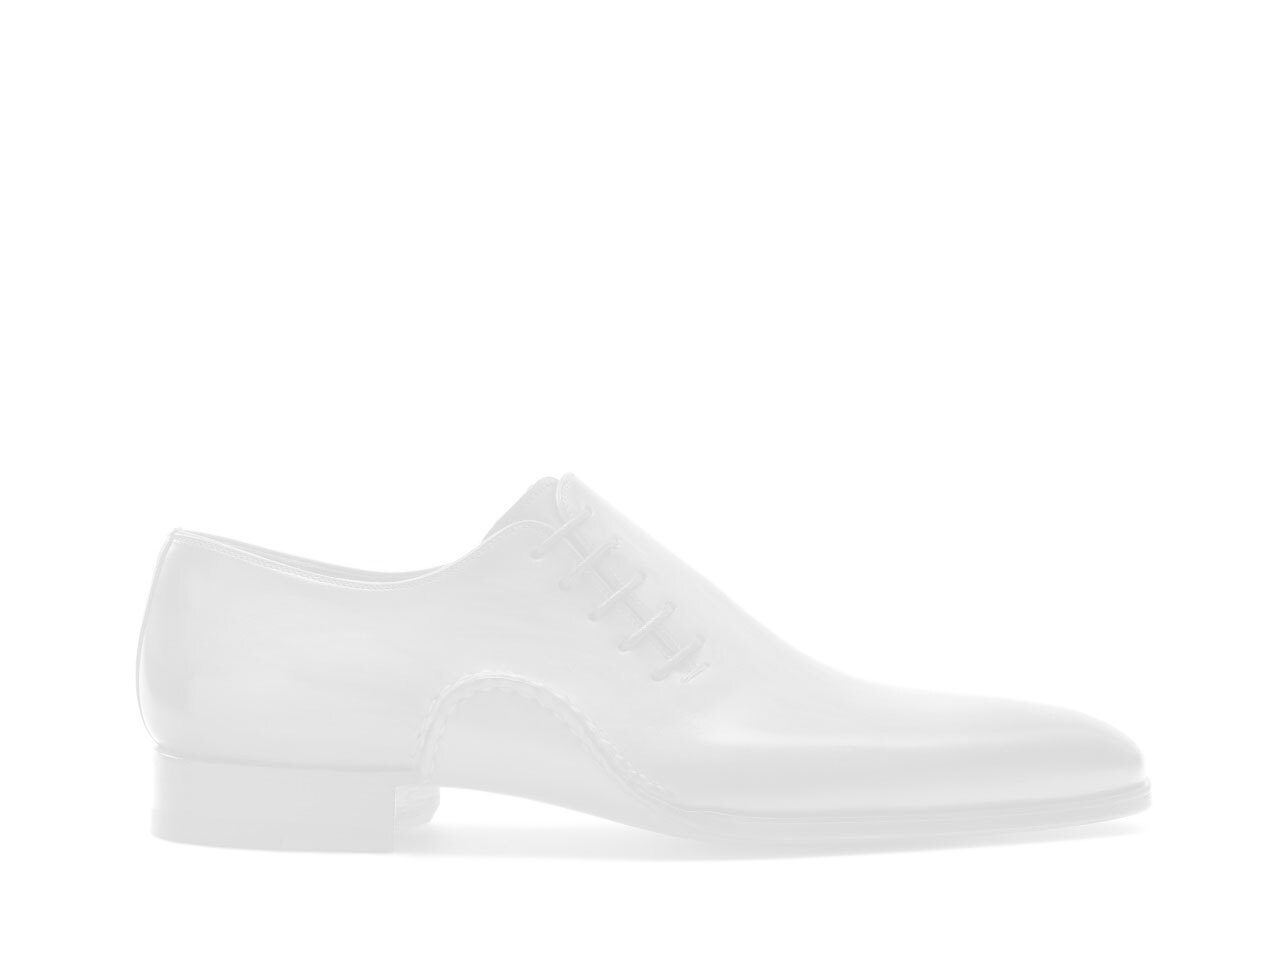 Sole of the Magnanni Elonso Lo White and Grey Men's Sneakers